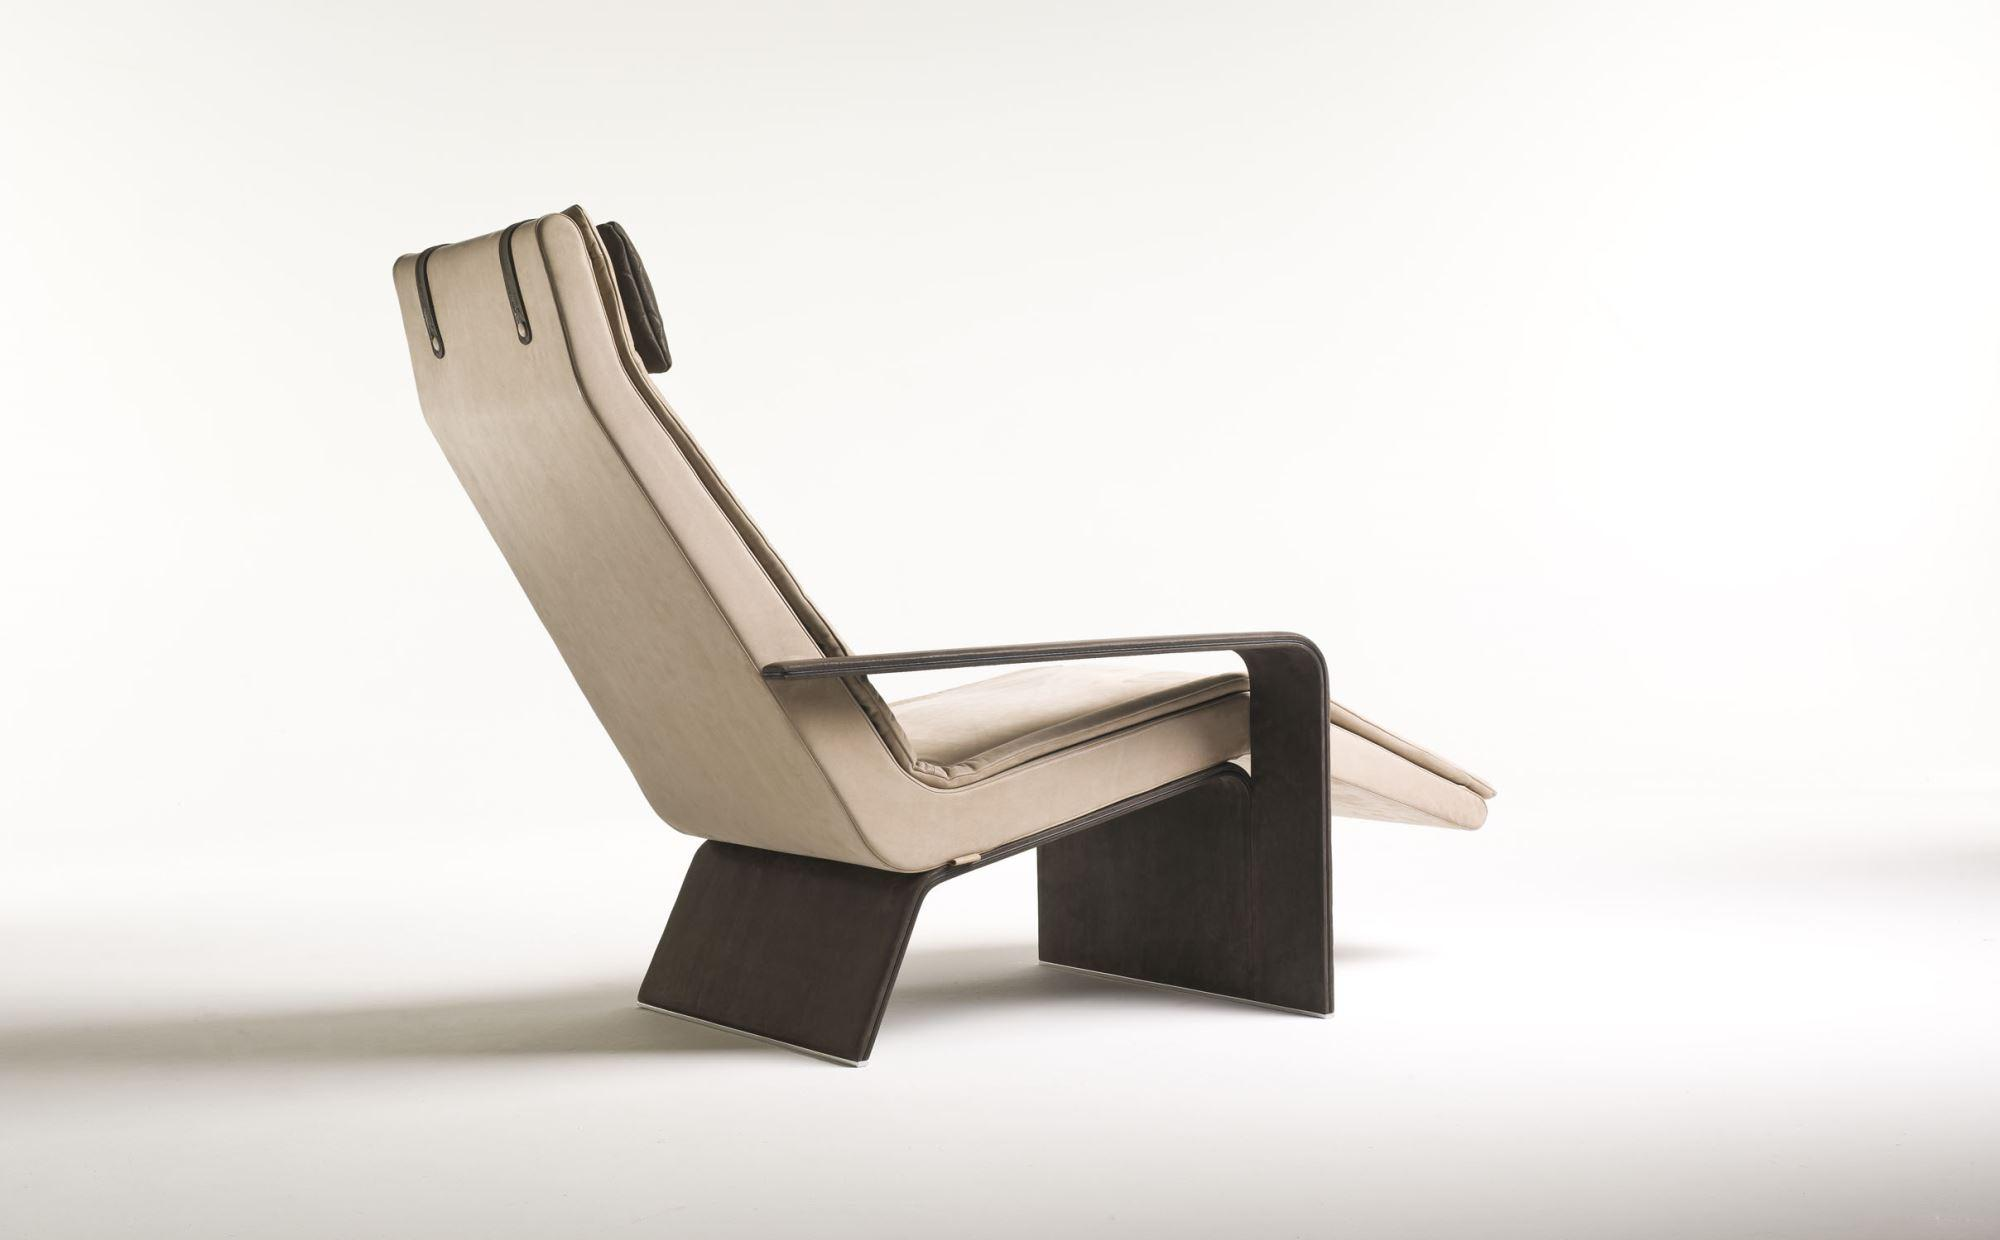 Chaise Longue Design Outlet Ala Upholstered Chaise Longue Chair Shop Online Italy